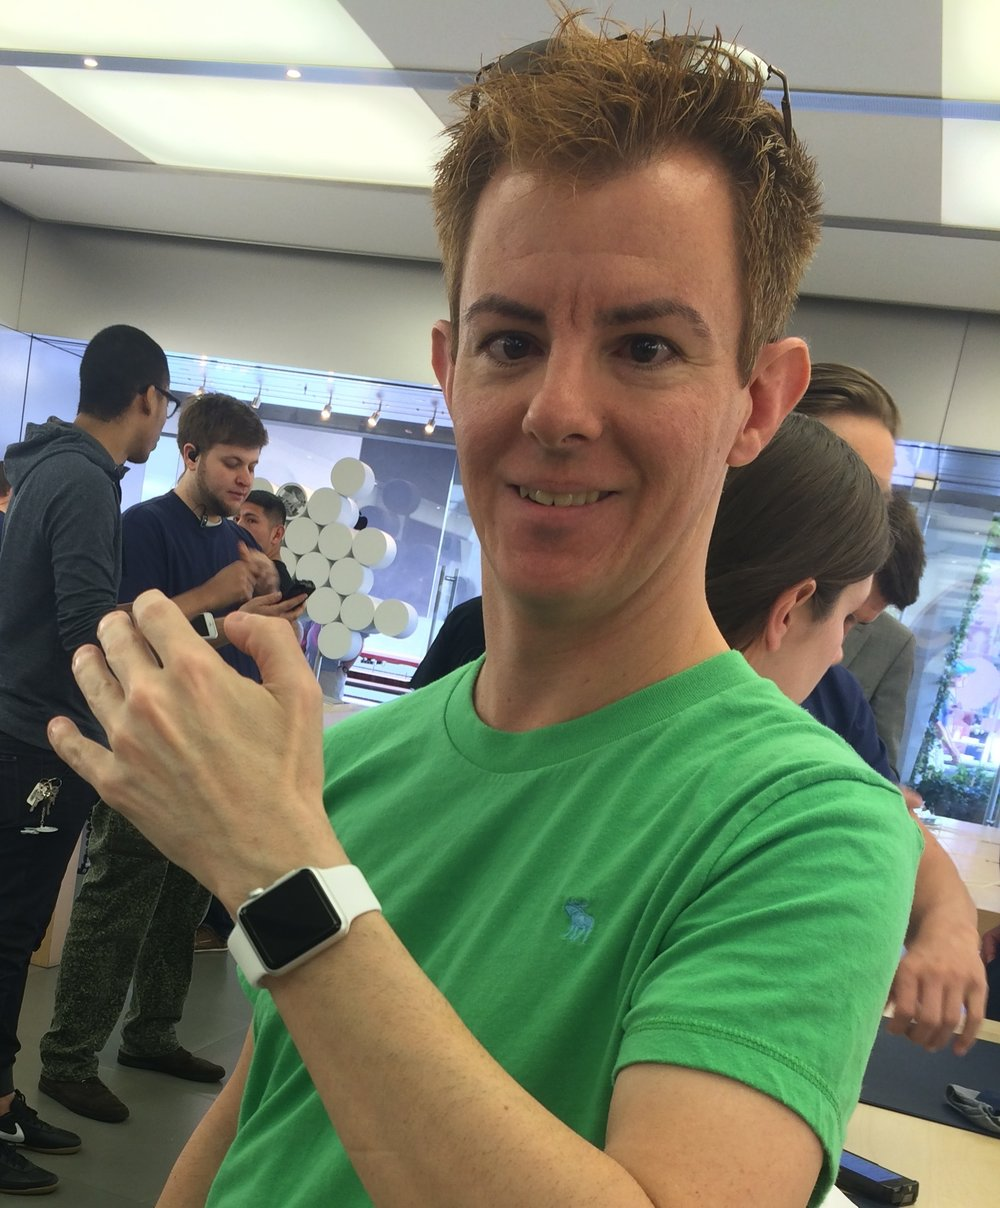 Excited to try on an Apple Watch in April 2015